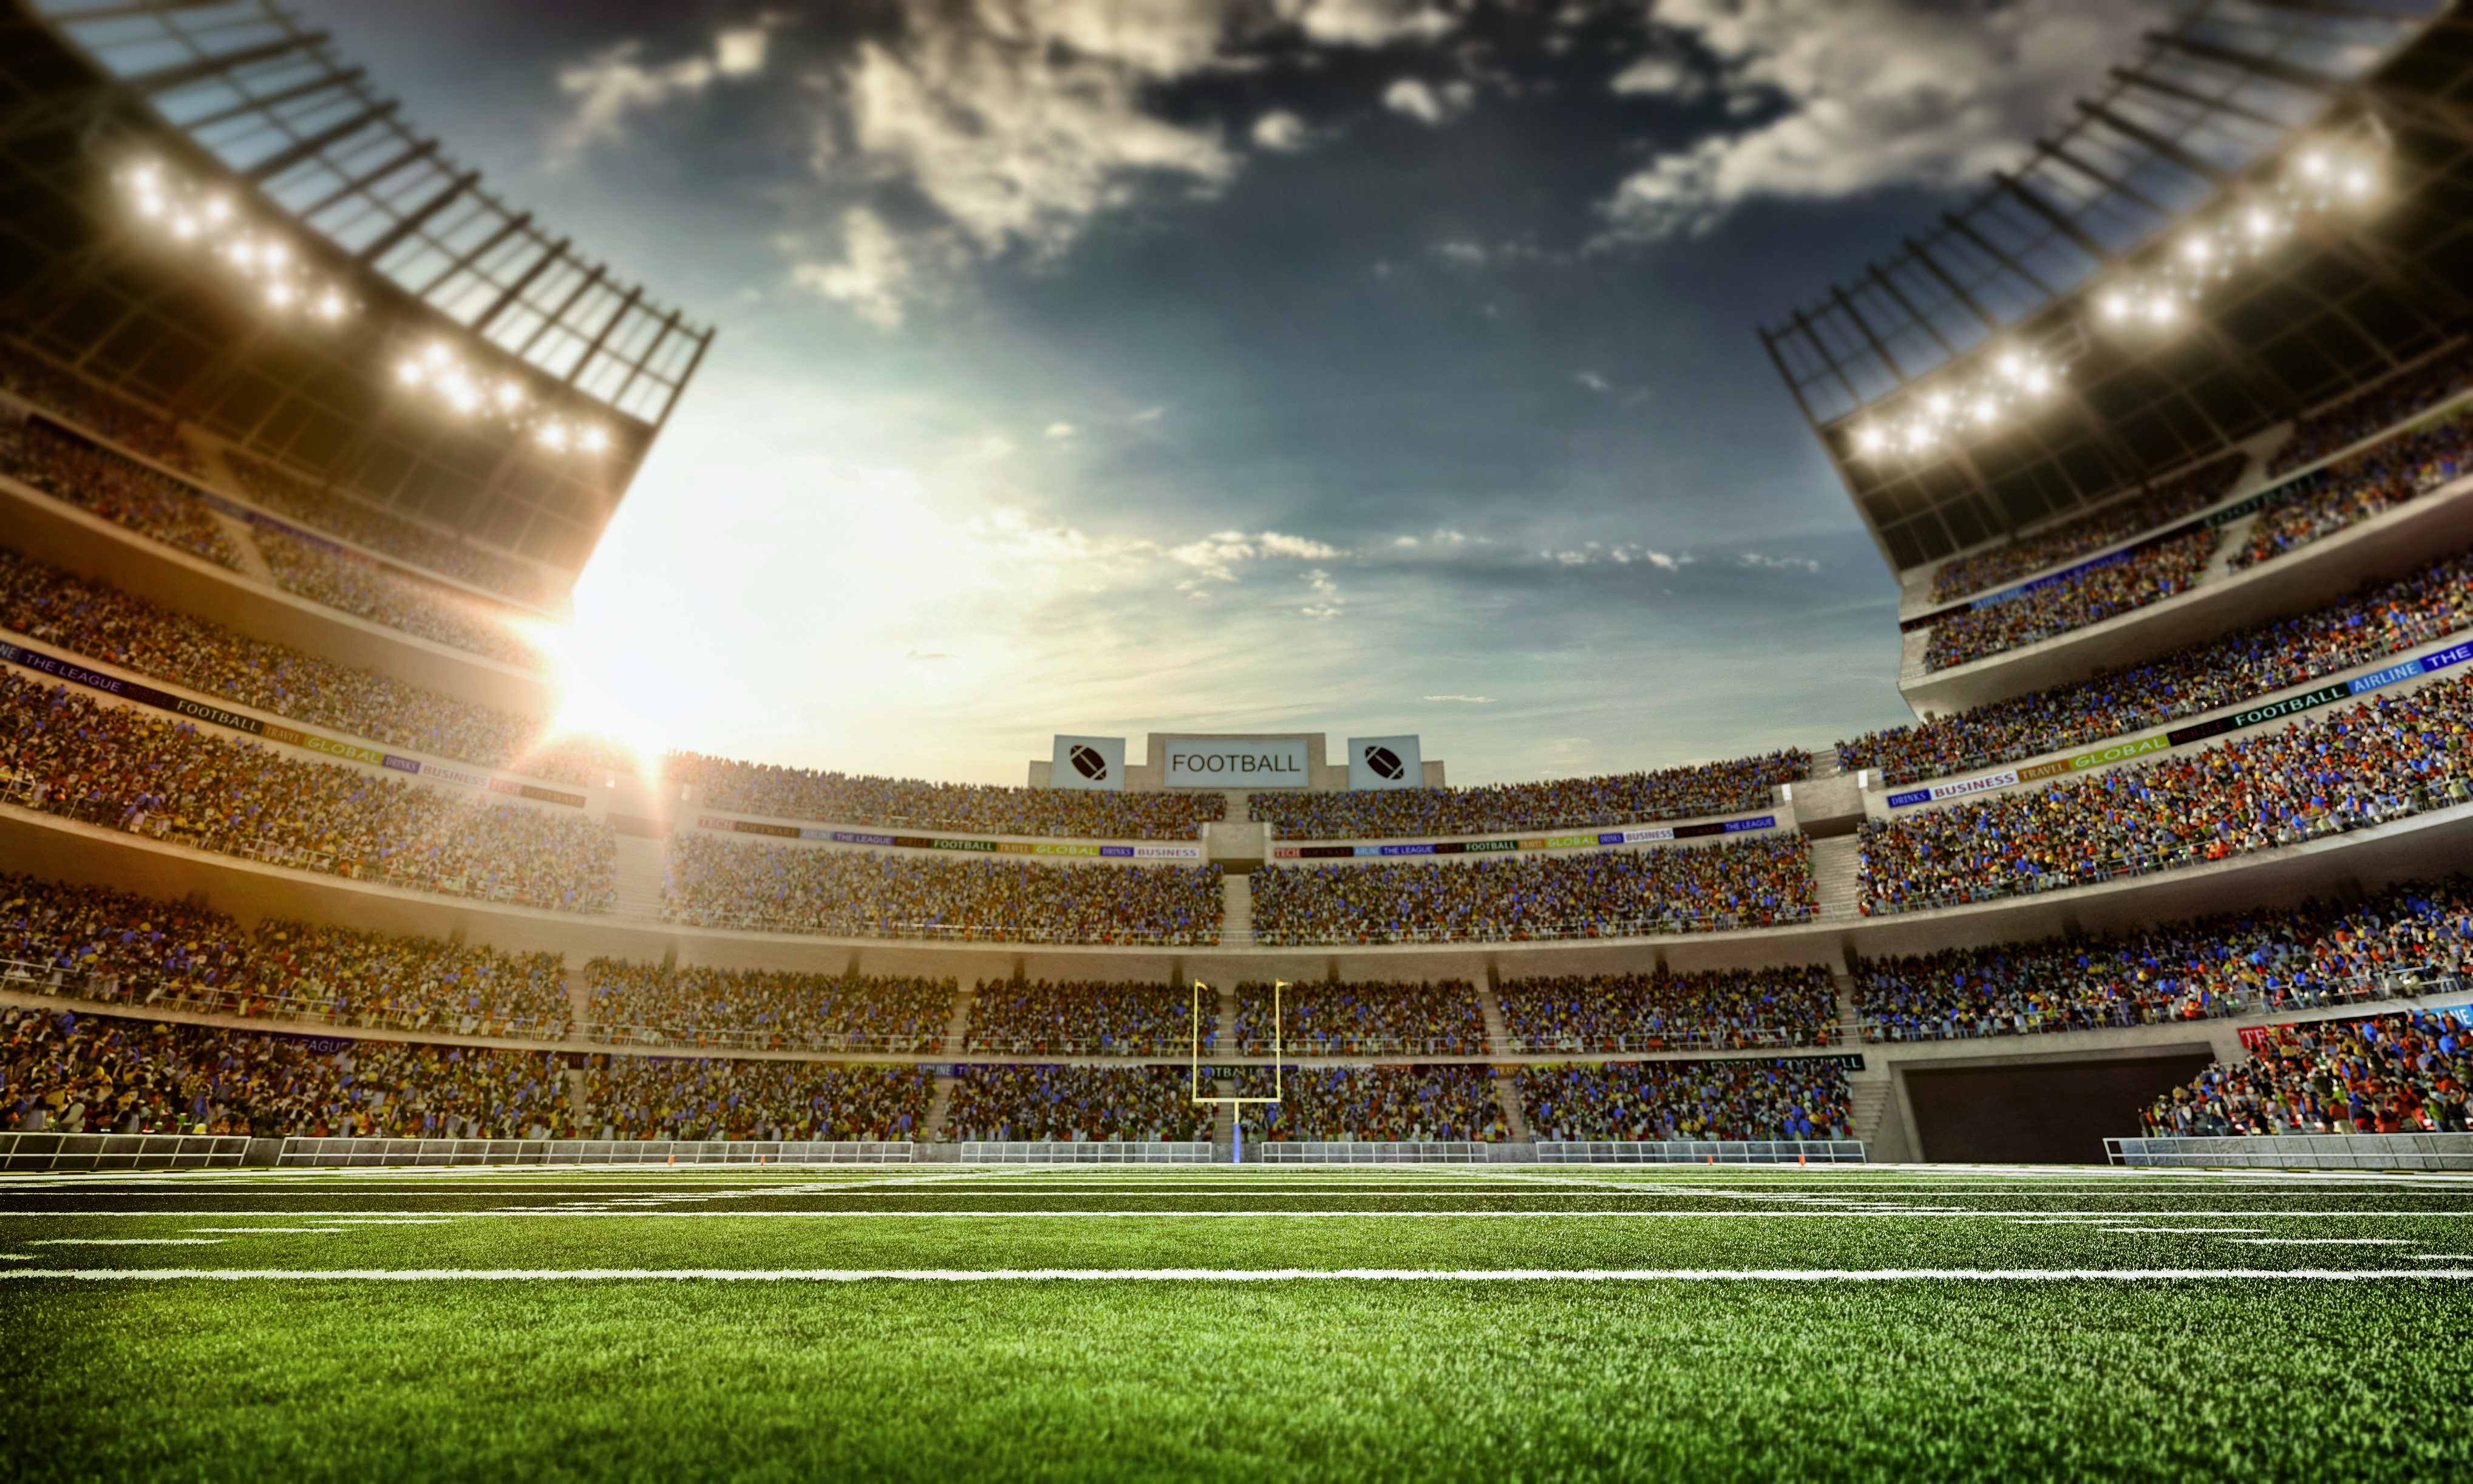 Get Real Time Information from the Crowd at the Big Game.